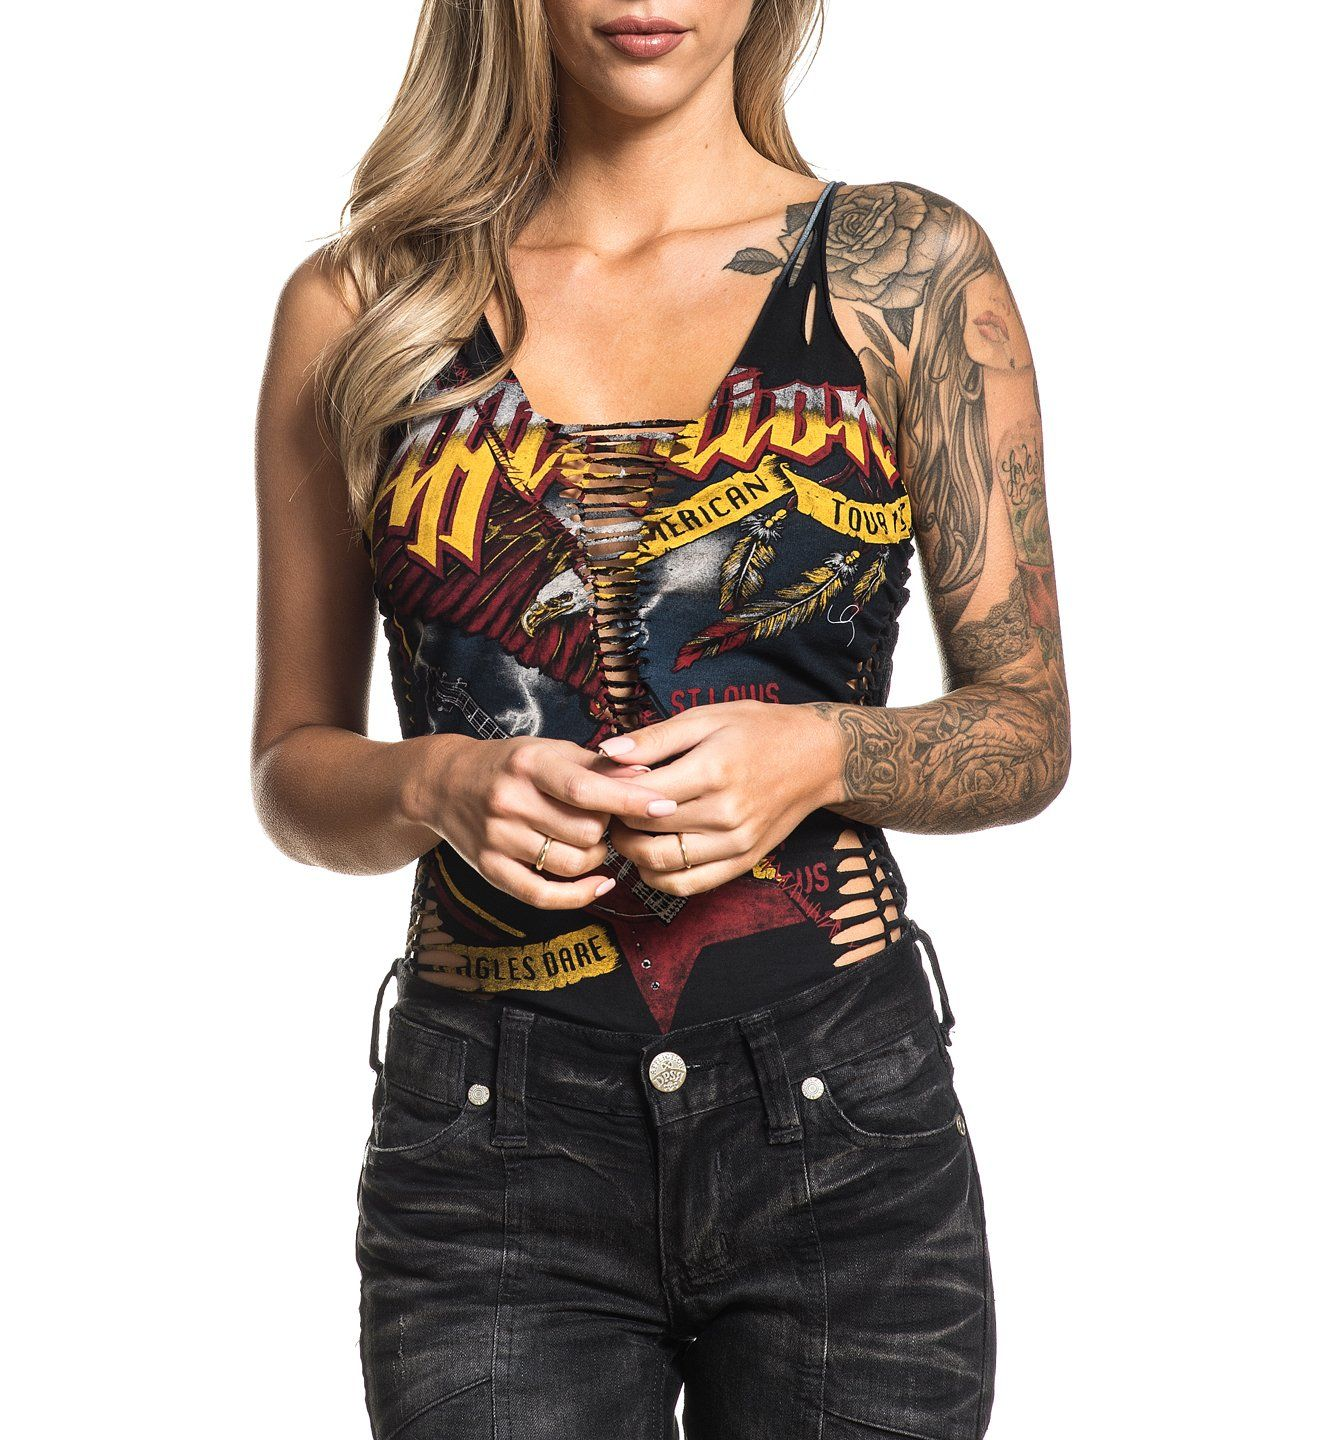 Womens Custom Crafted - Setlist Suture Rev. Bodysuit